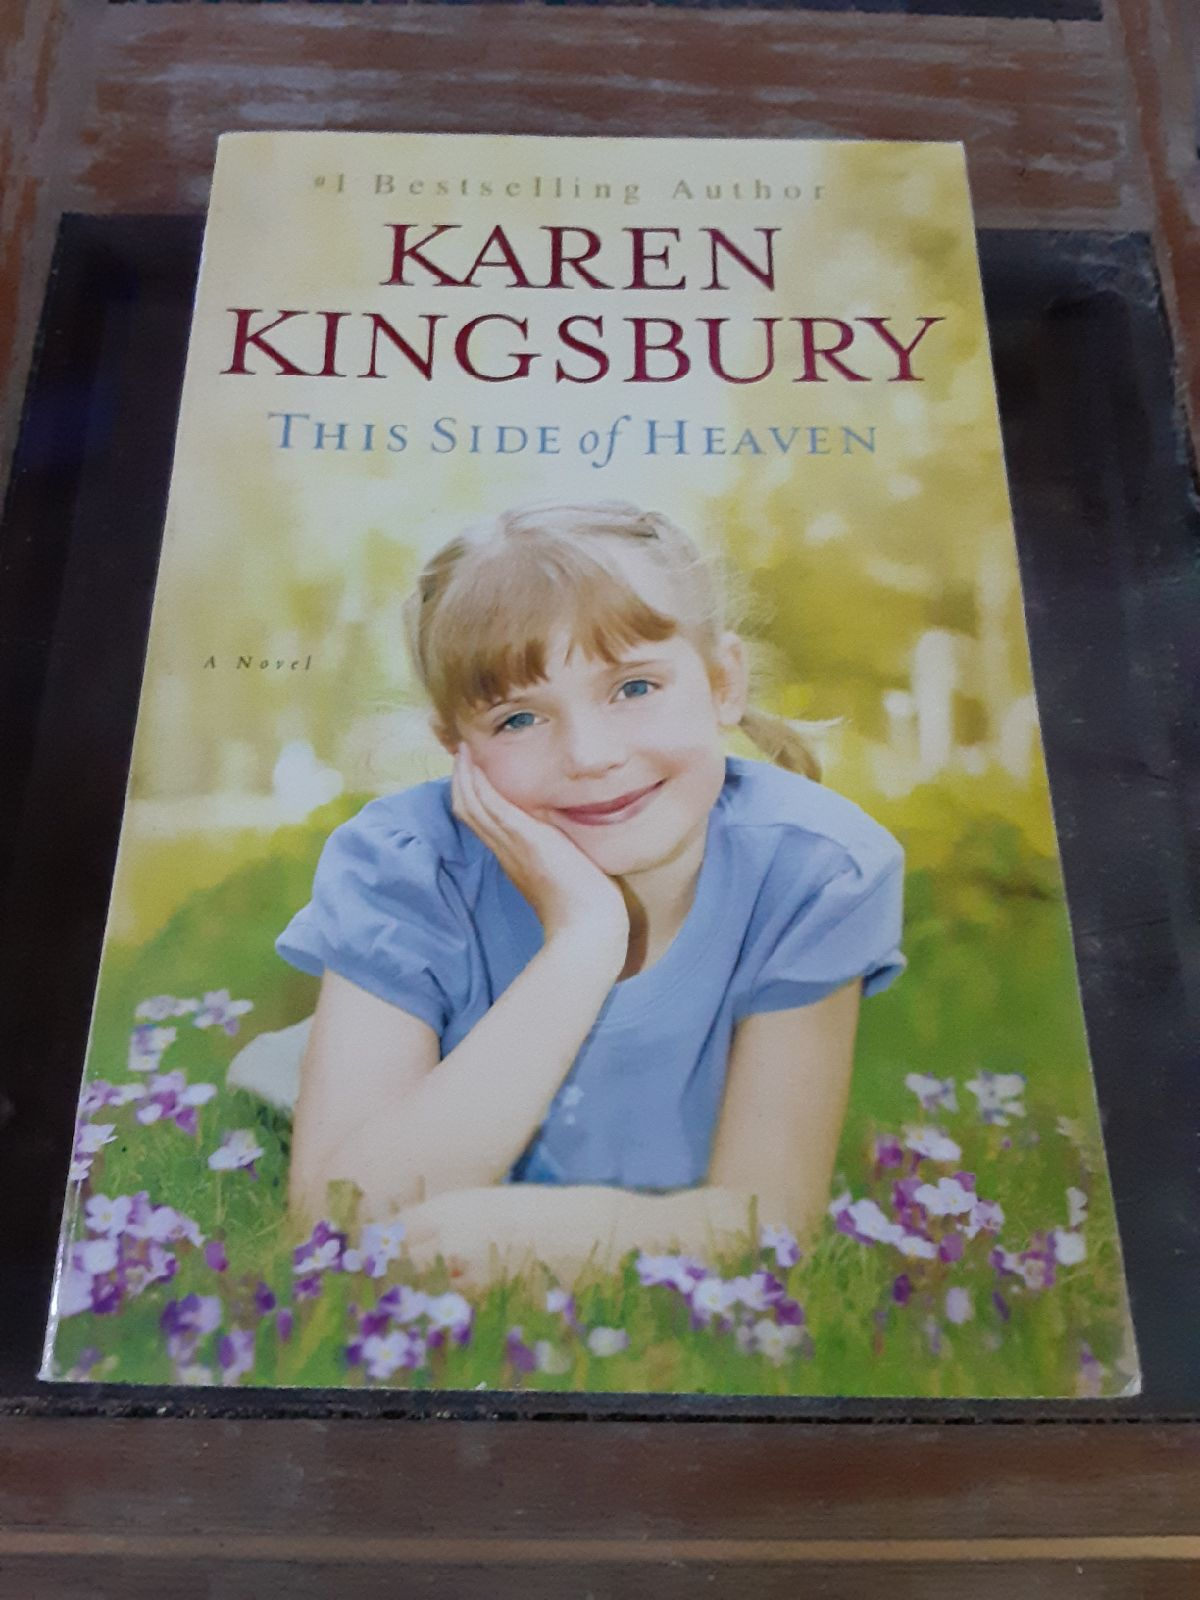 Karen kingsbury this side of heaven